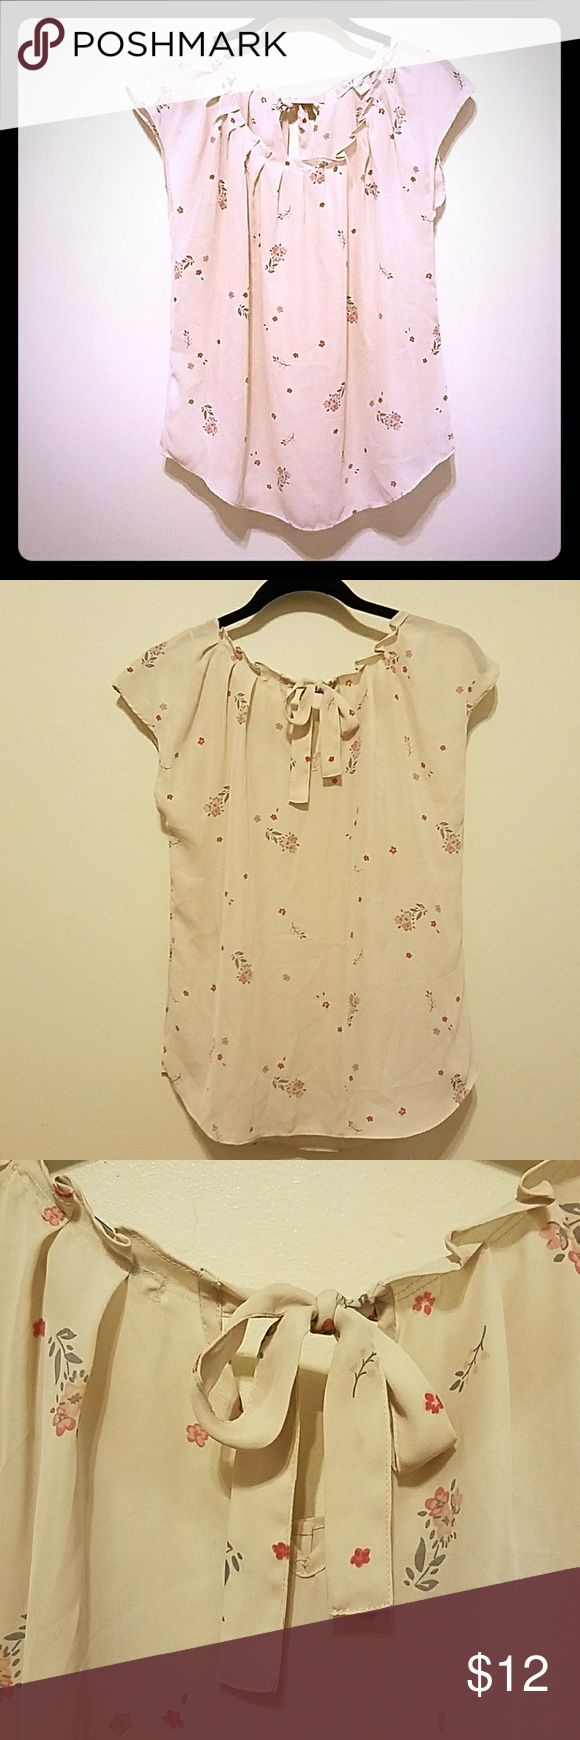 Floral bow back top LC Lauren Conrad Feminine Floral and Flirty! Very cute tie at the back- pale pink with gray/dark pink floral pattern - EUC LC Lauren Conrad Tops